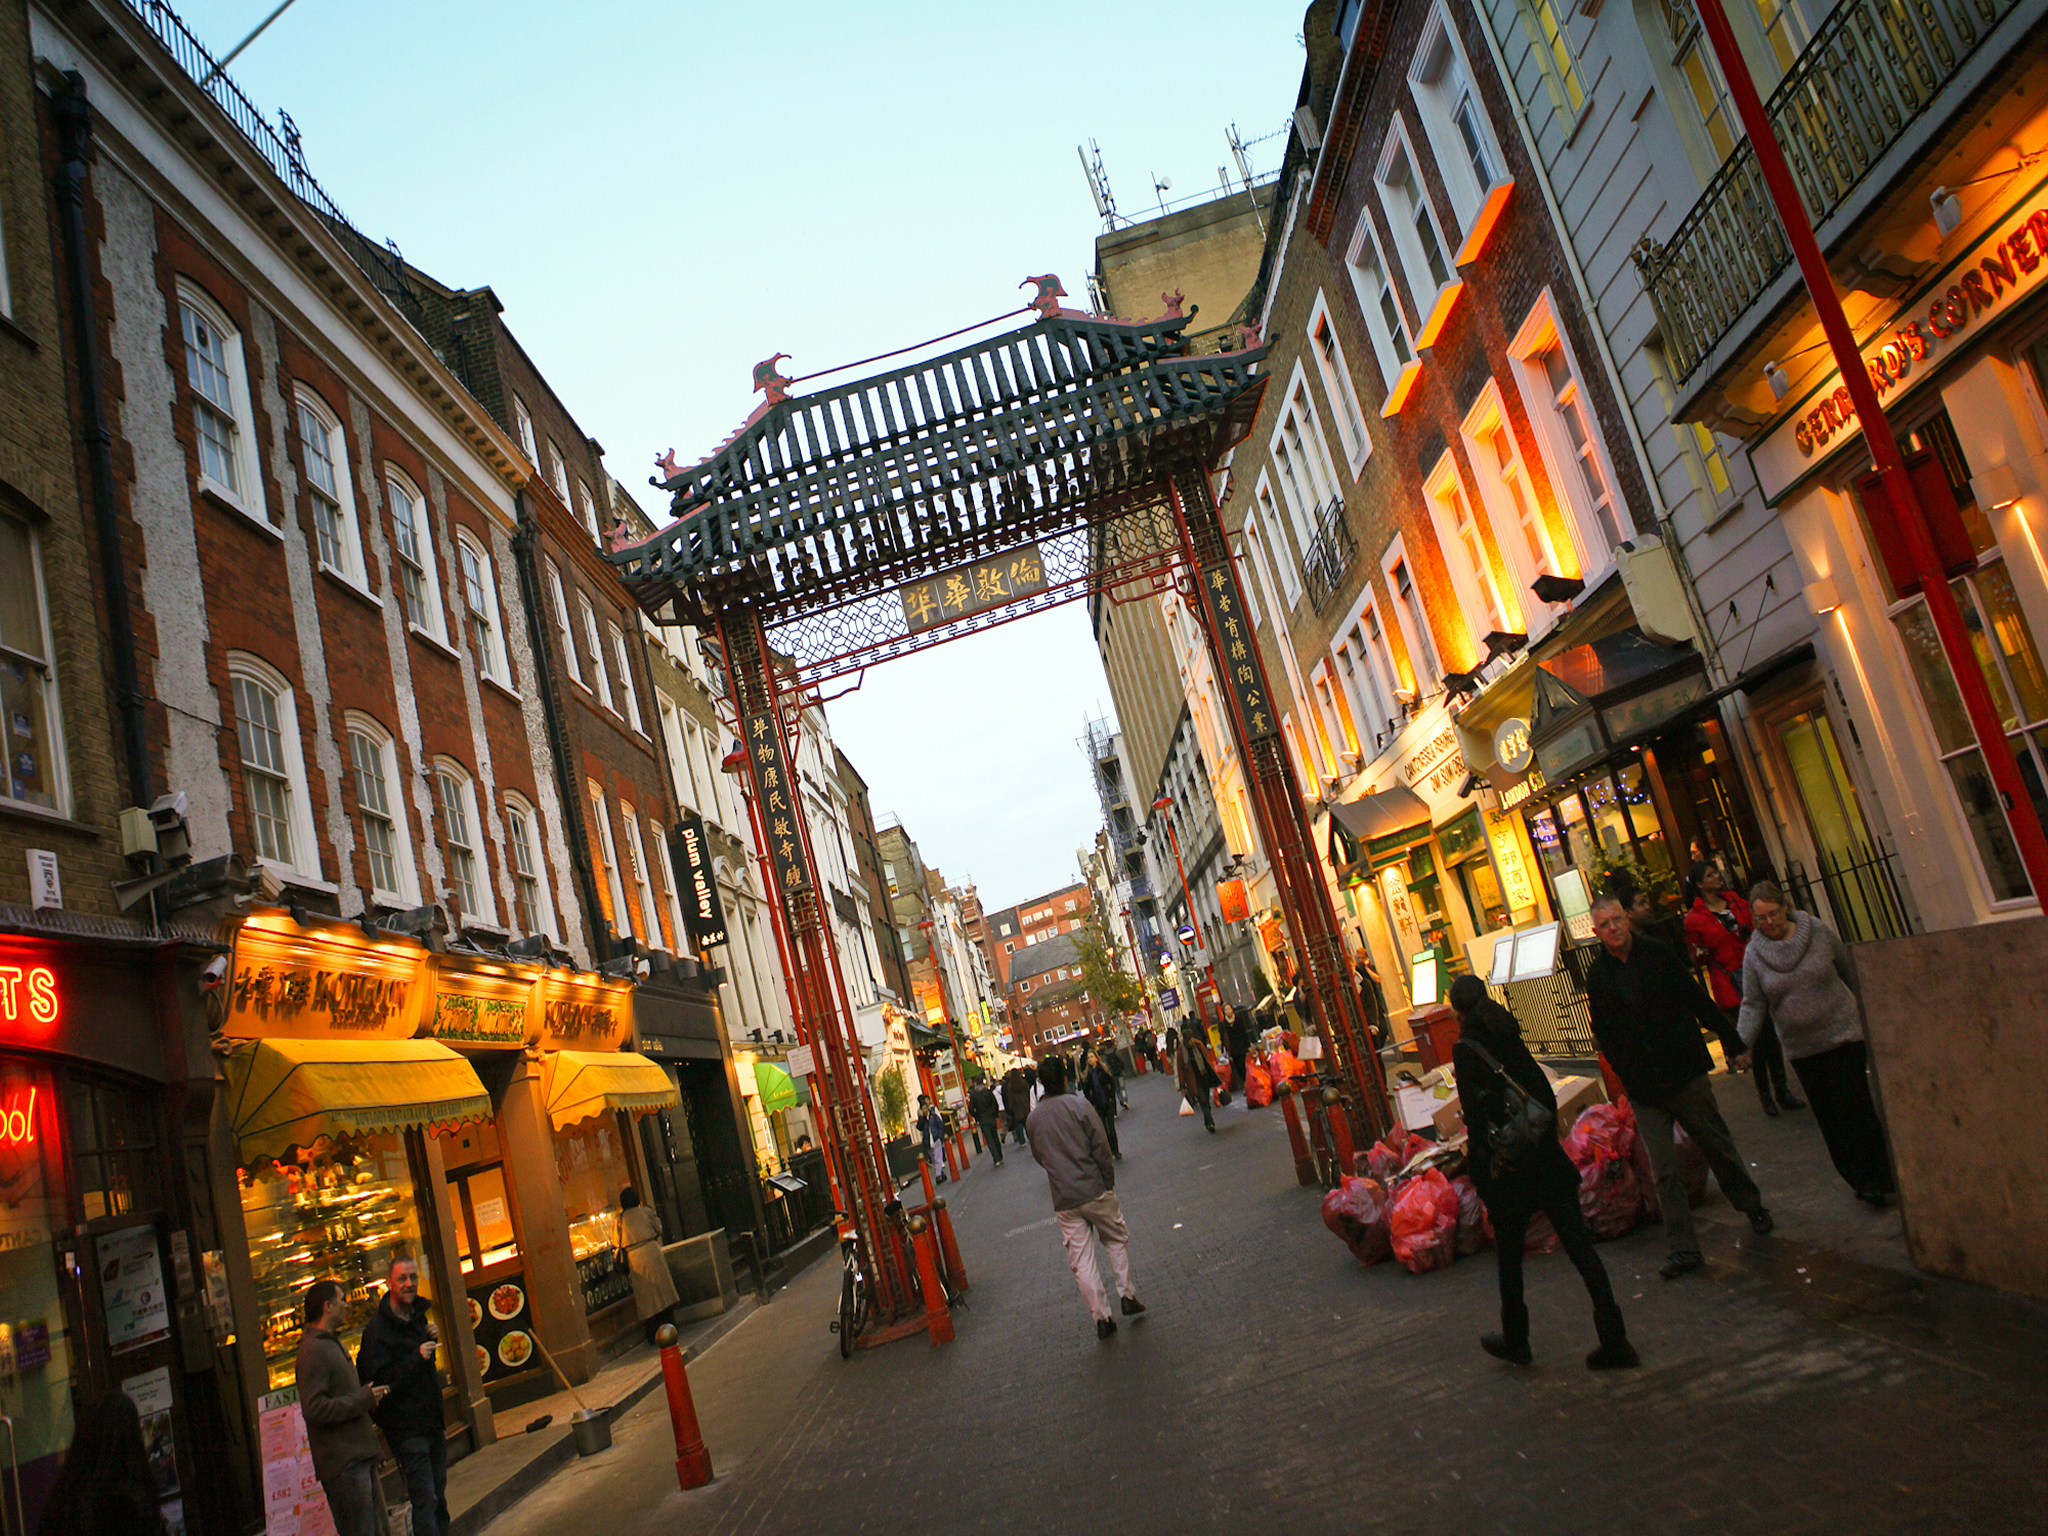 101 Things To Do in London: Chinatown